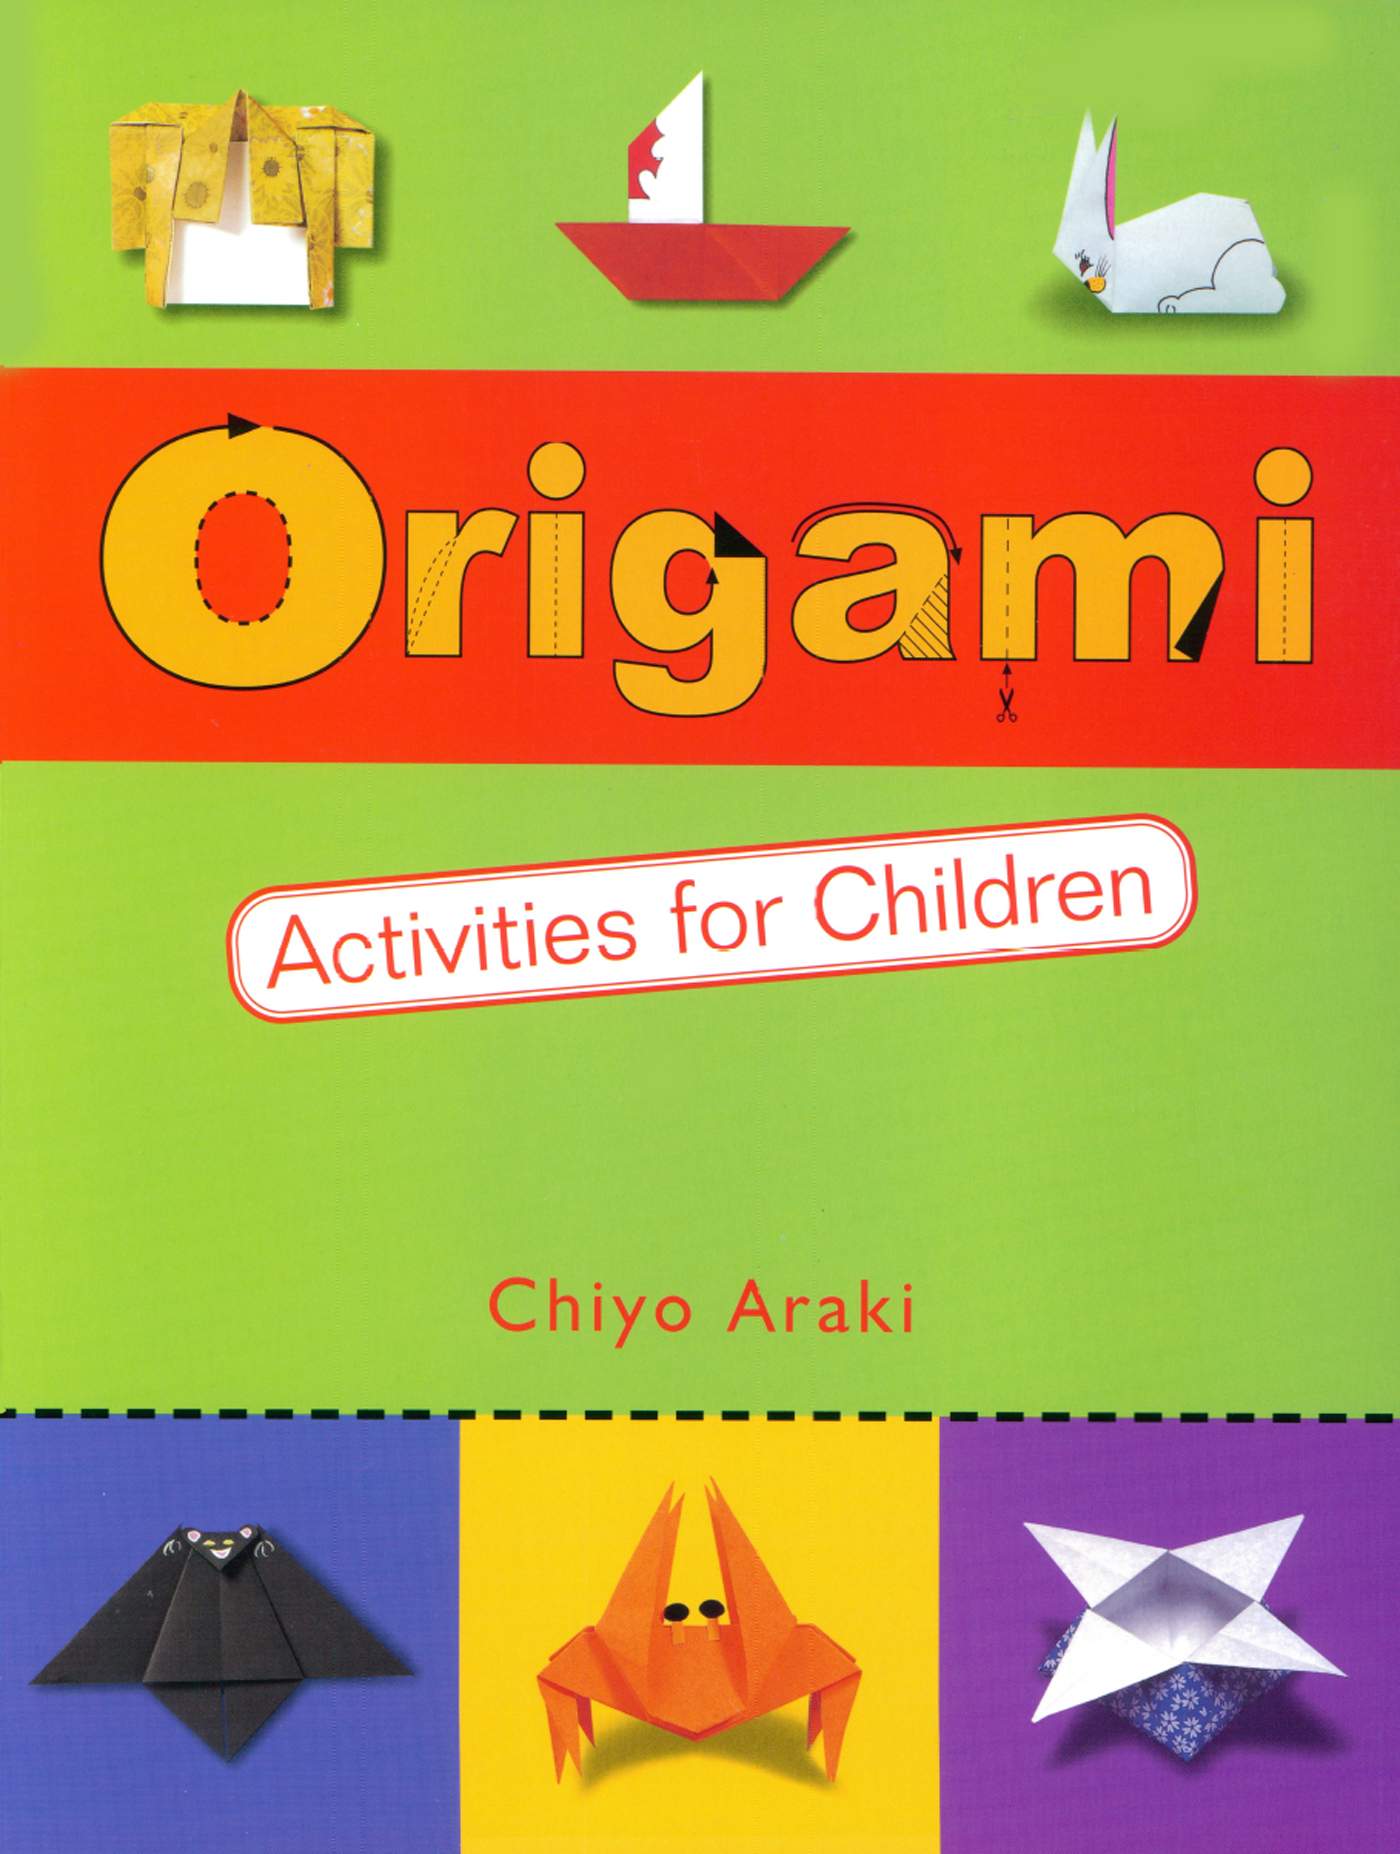 Origami Activities For Children By: Chiyo Araki